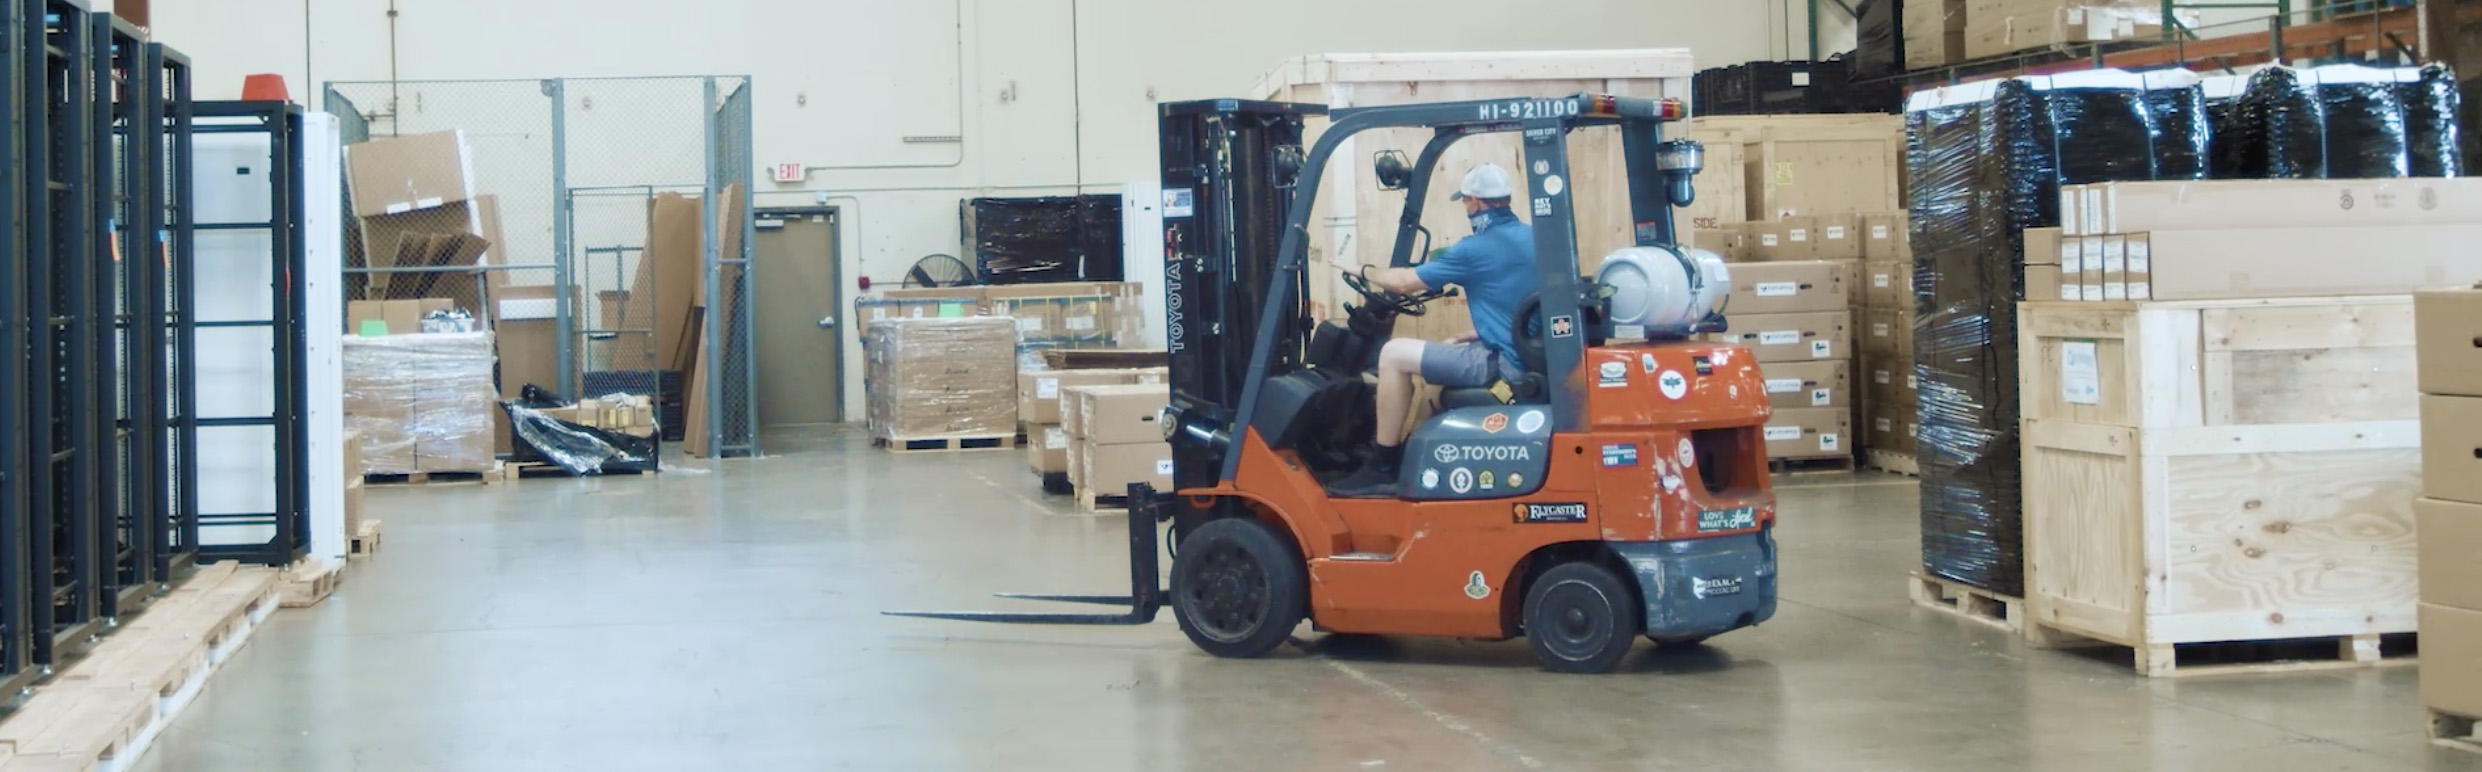 wide-image_shipping-forklift-warehouse-logistics